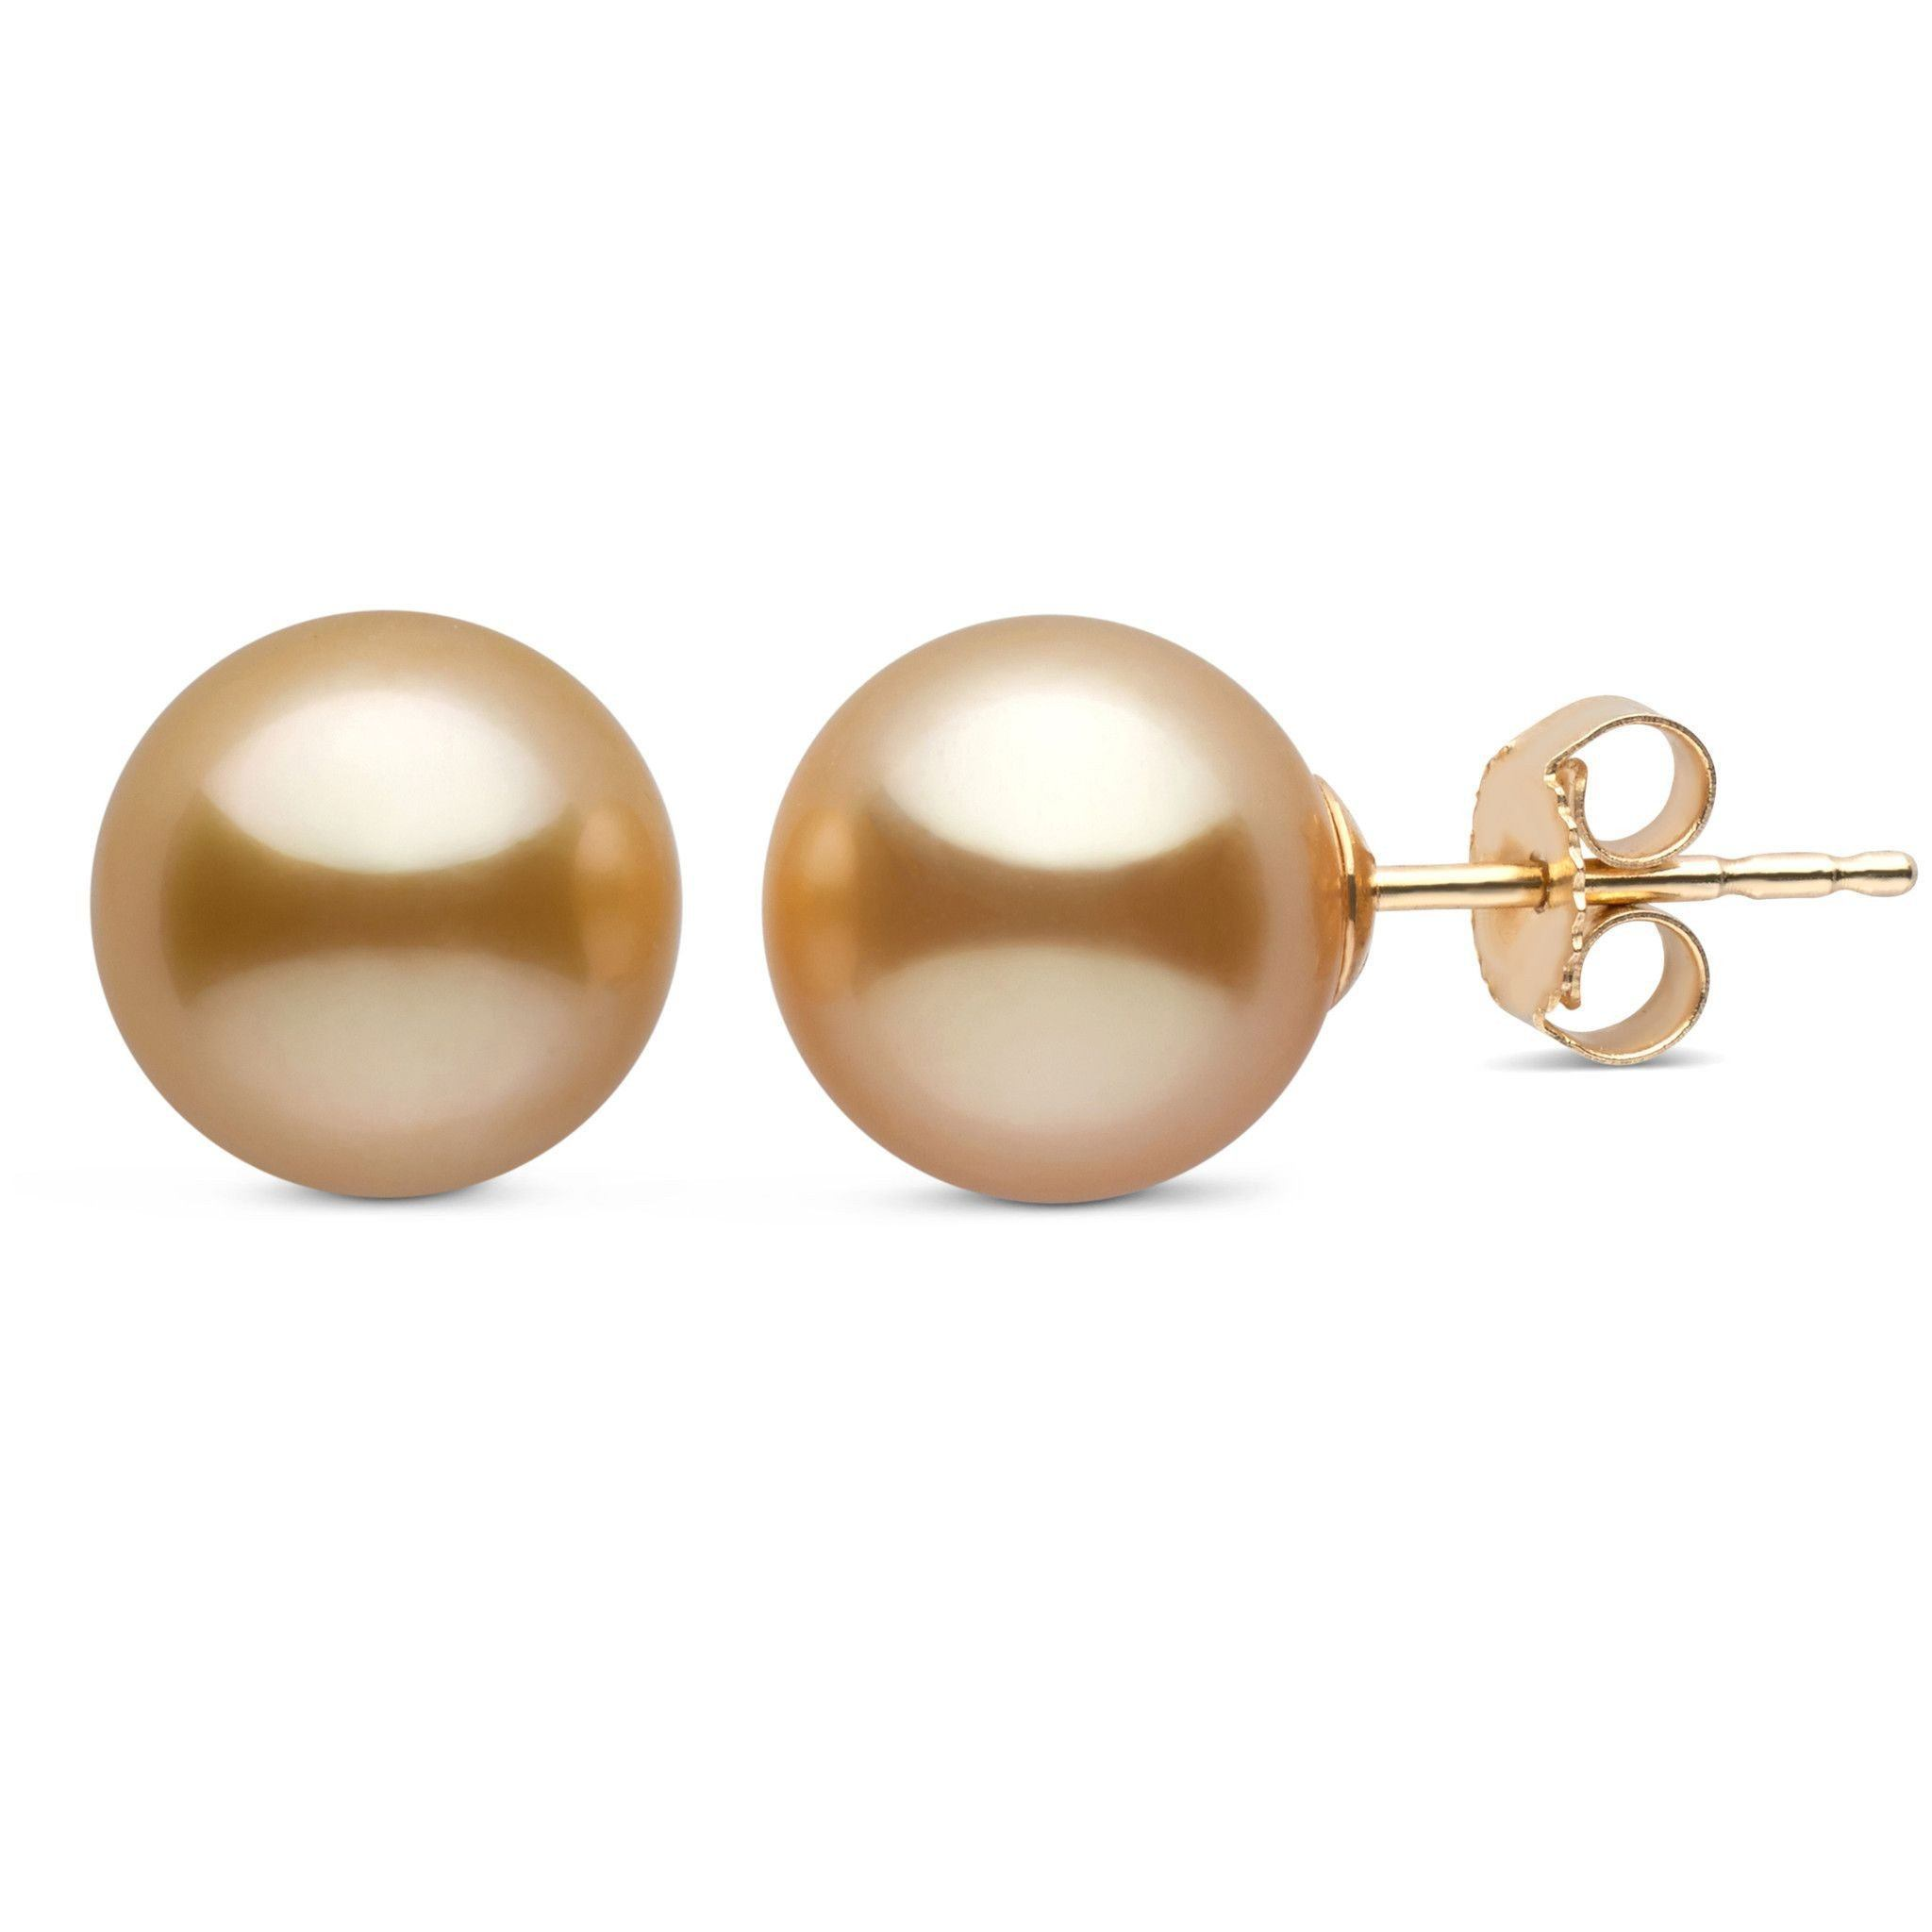 8.0-9.0 mm AAA Golden South Sea Pearl Stud Earrings